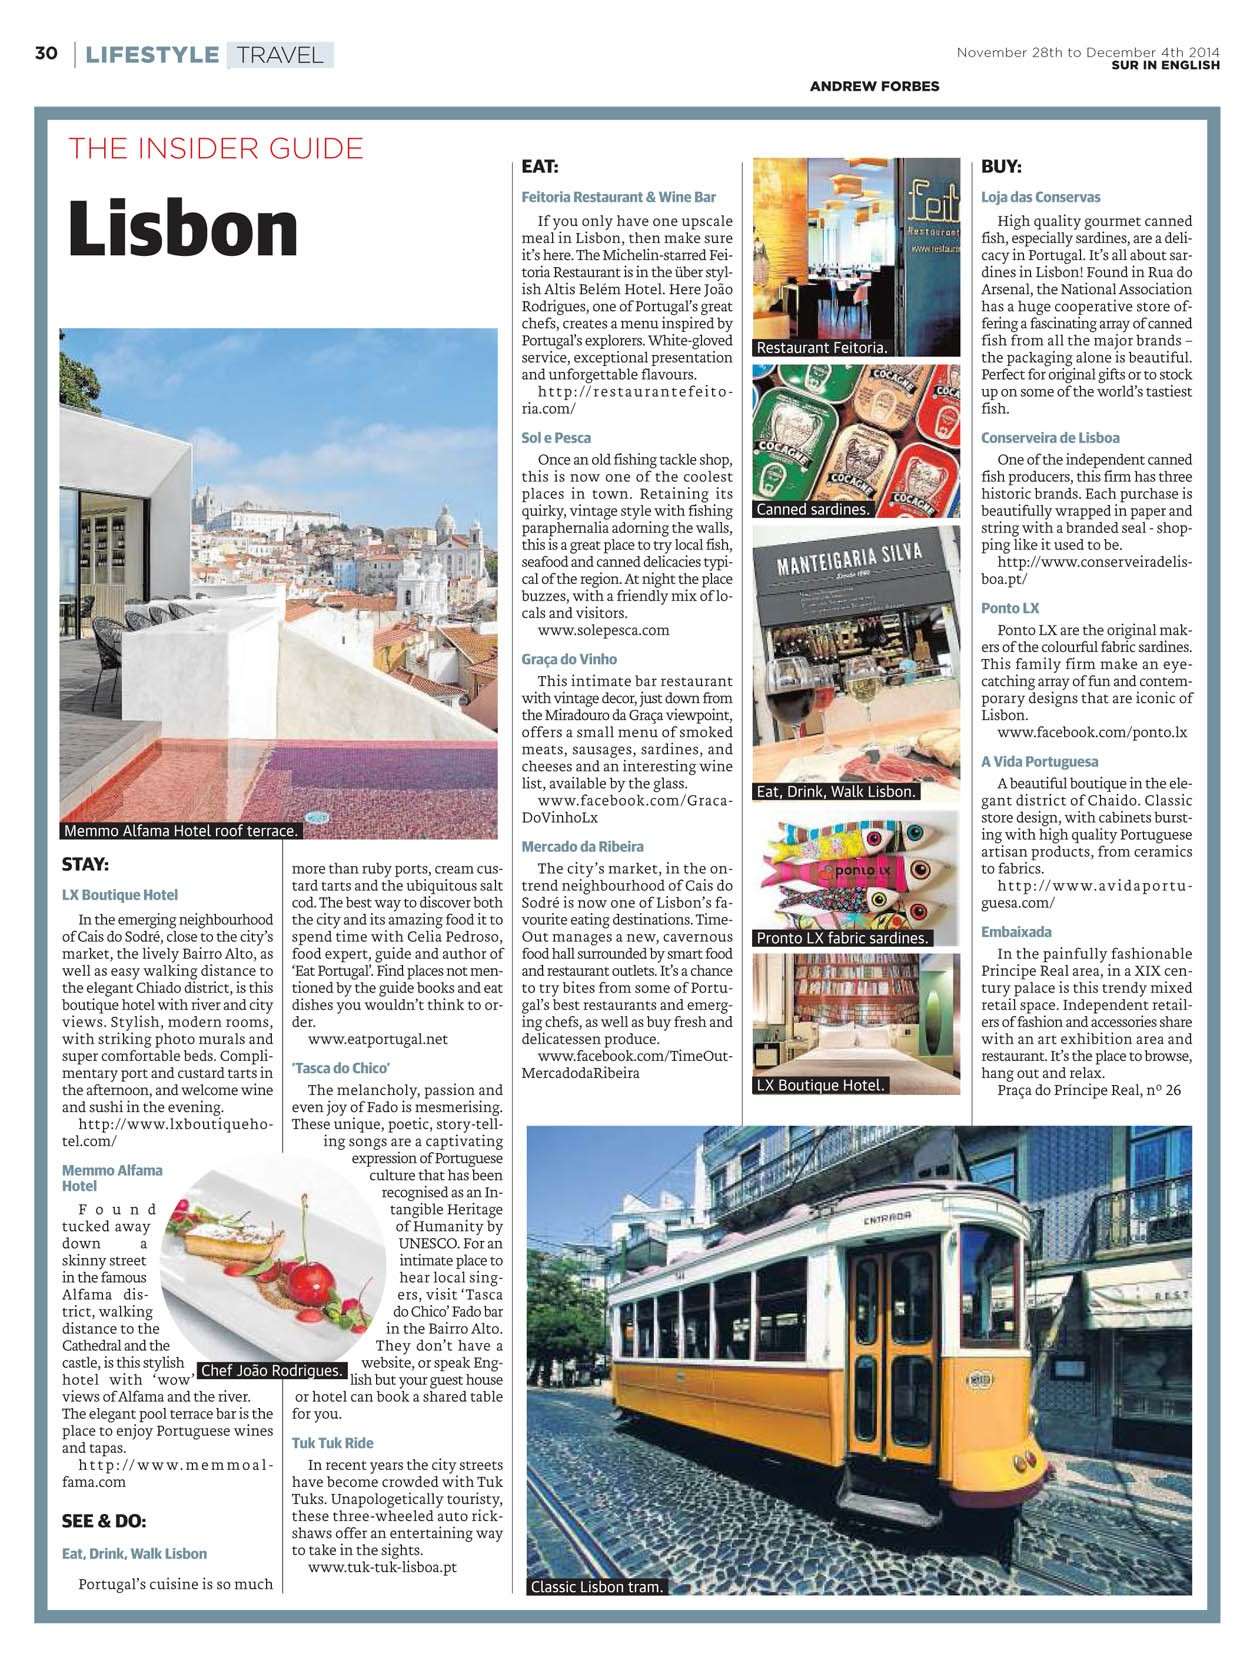 INSIDER GUIDE LISBON BY ANDREW FORBES